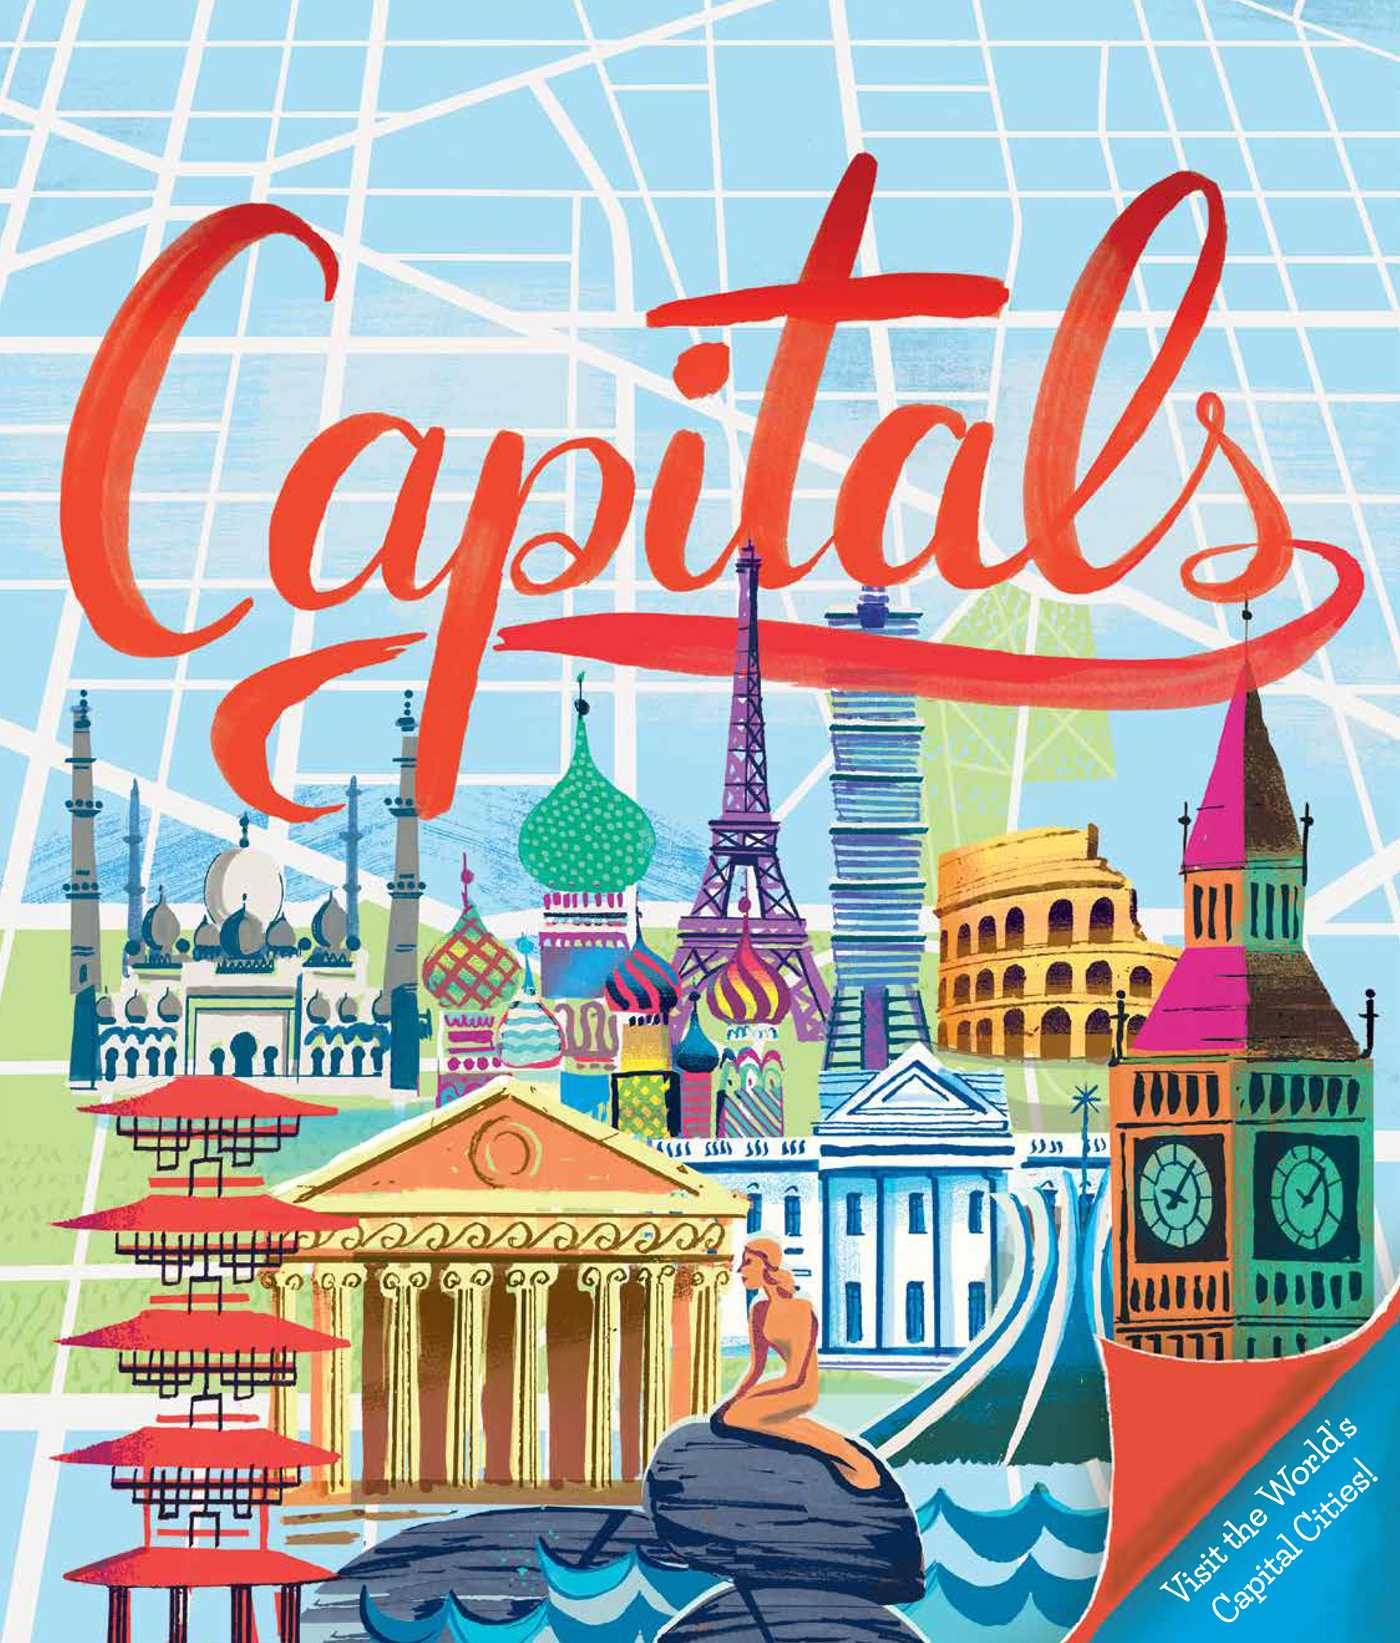 10 youngest capitals of the world